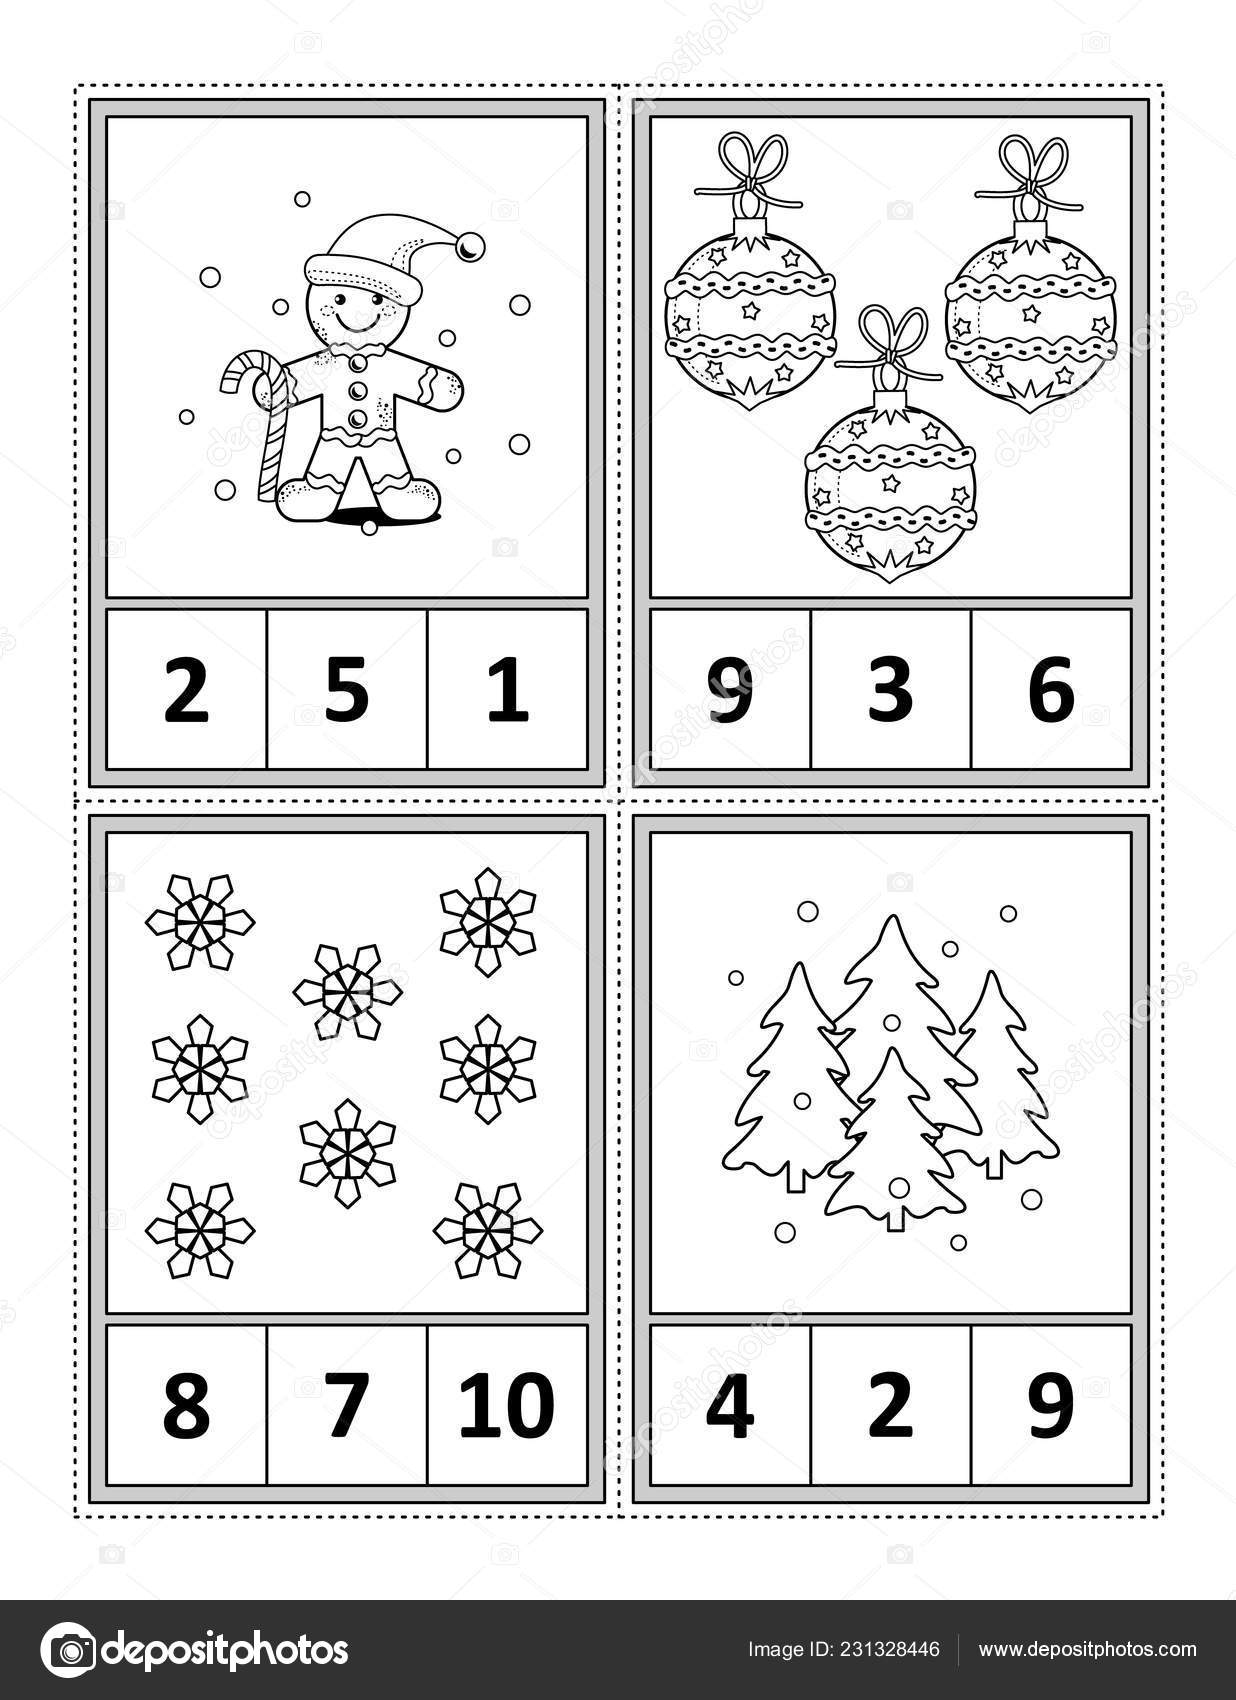 Worksheet Counting Snow Flakes